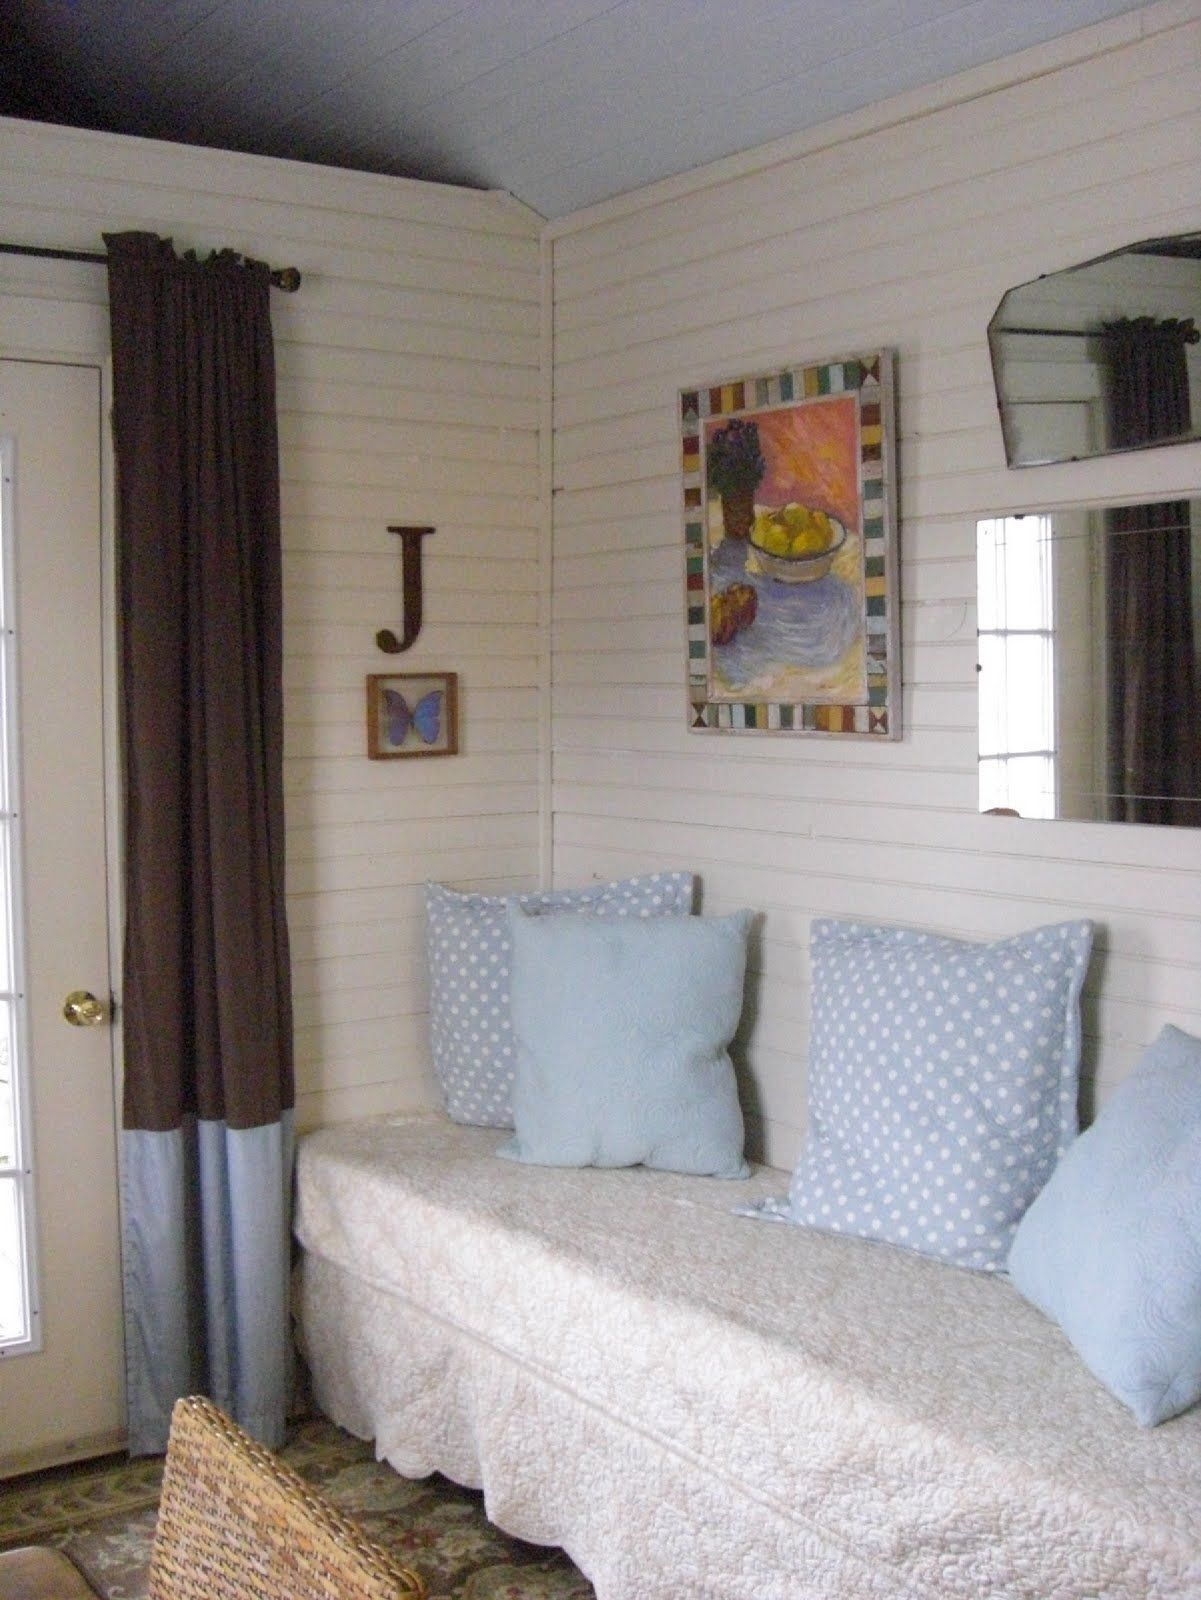 Fold Out Bed Folded Up Diy How To Live In 320 Square Feet How To Squeeze A Guest Room Into